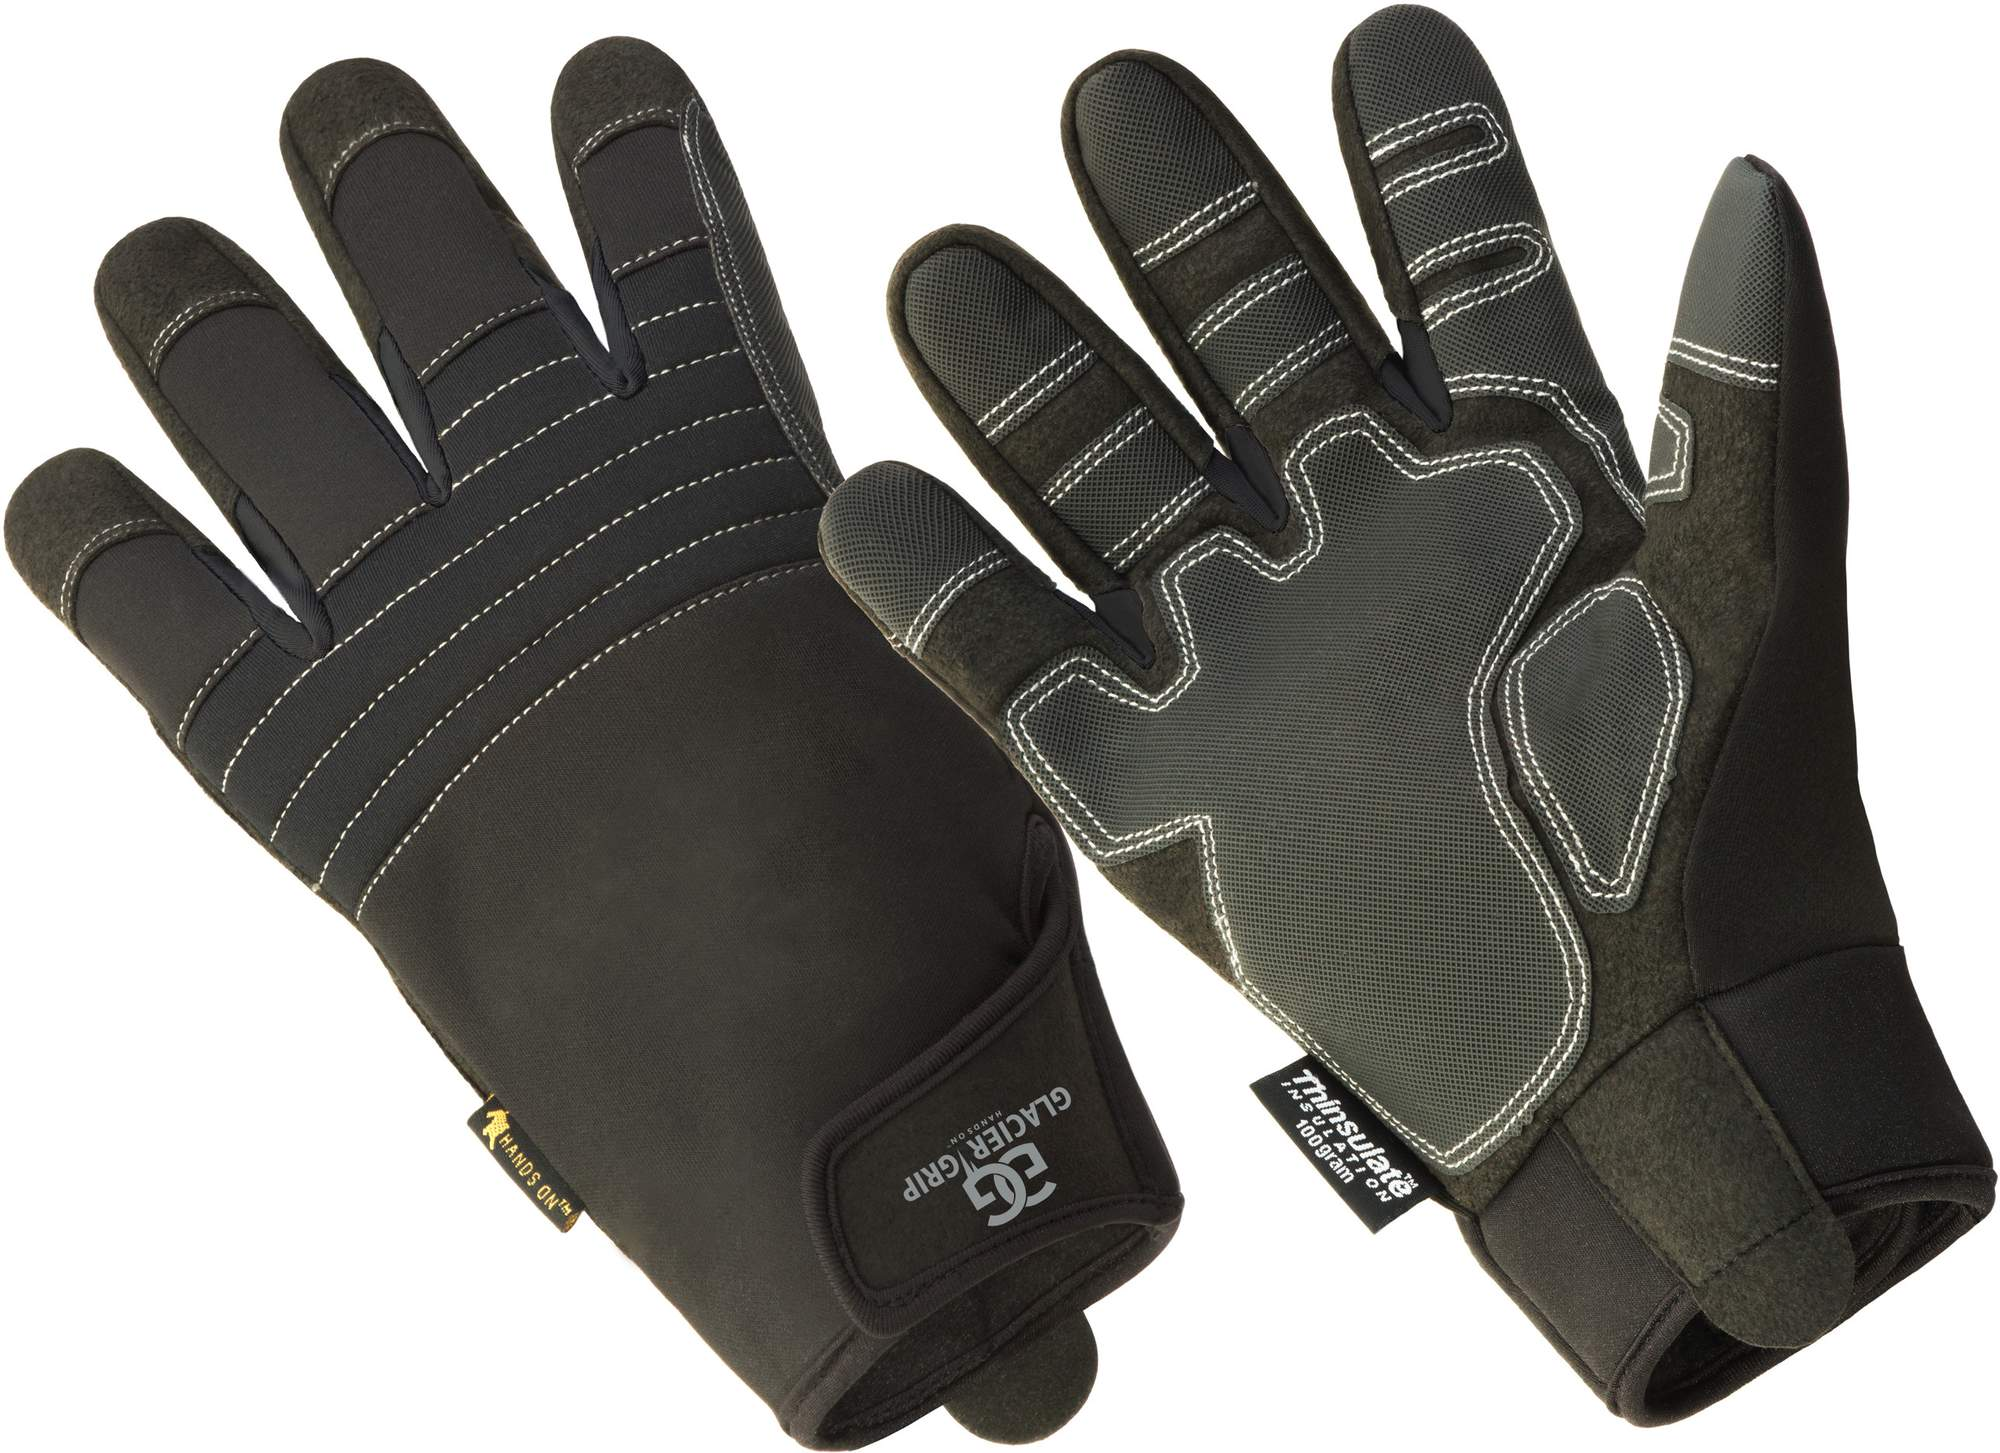 Mens All Action Fleece Lined Gloves With Gripper Palm and fingers